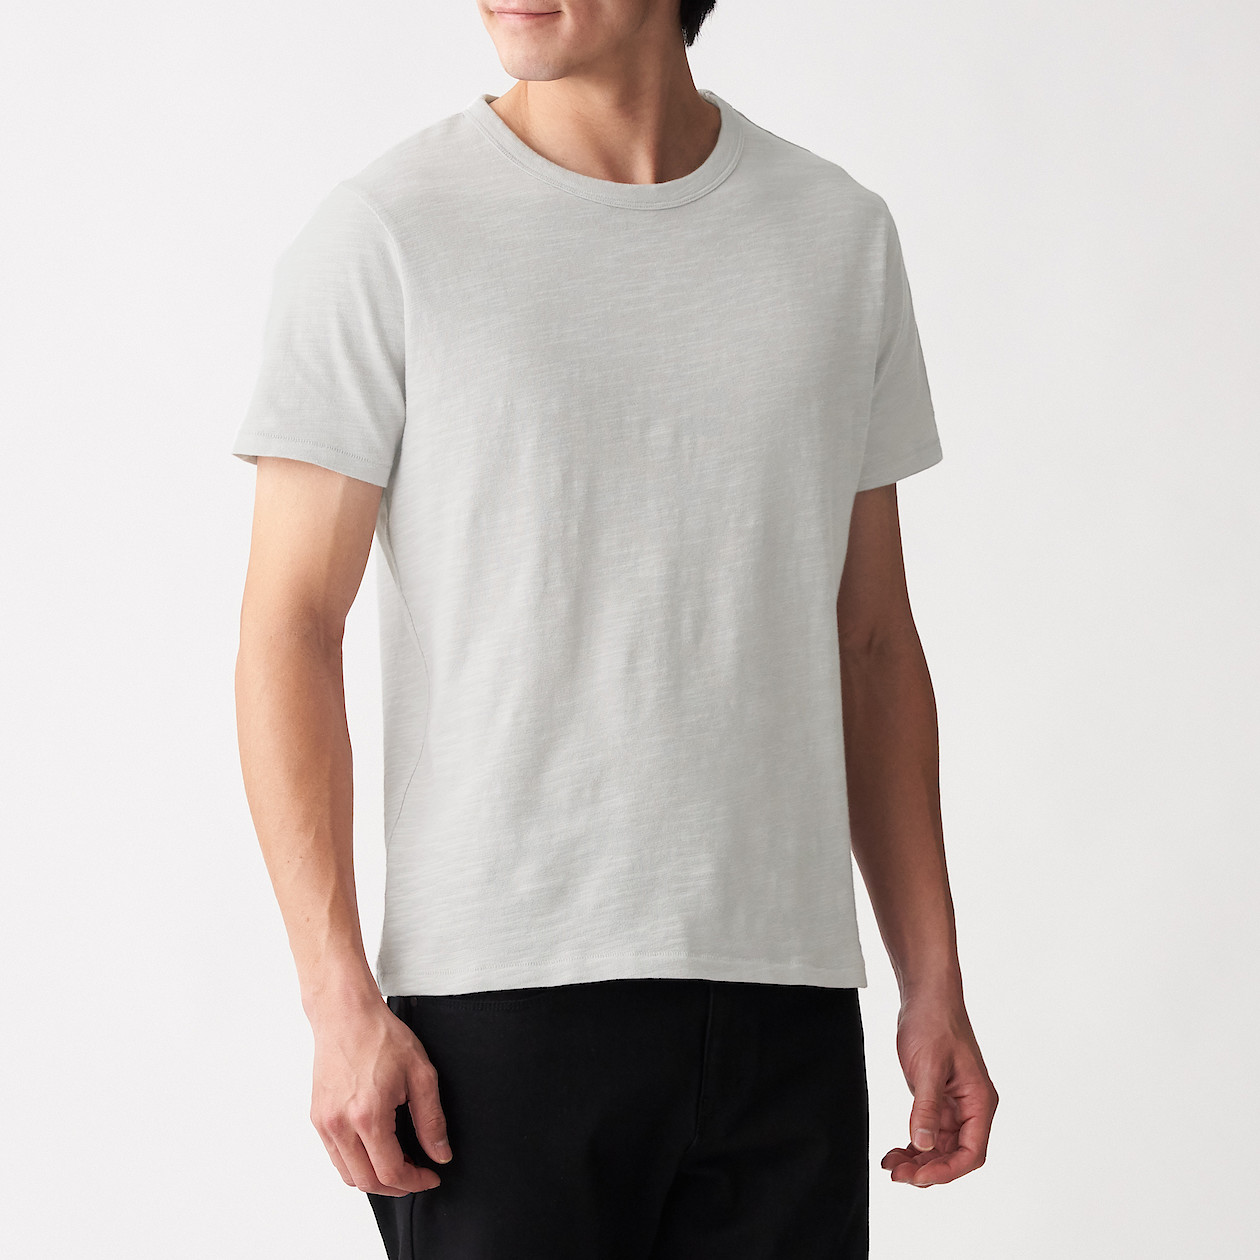 Men's Organic Cotton Uneven Yarn Crew Neck Short Sleeves T-Shirt